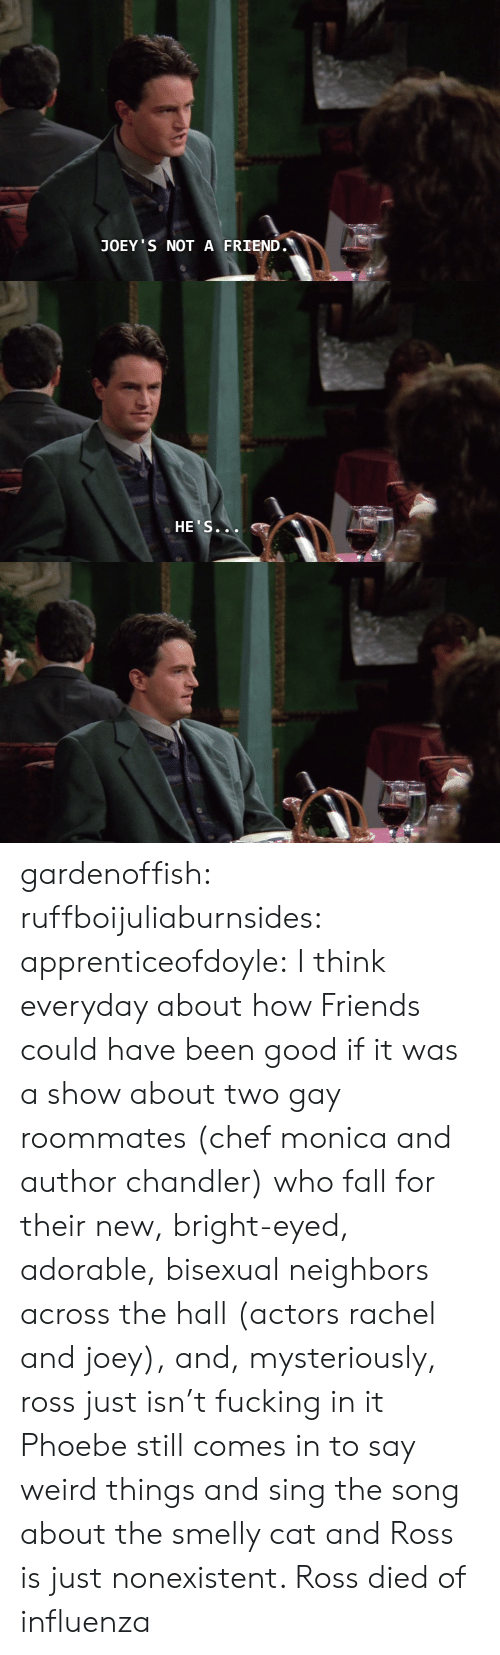 Fall, Friends, and Fucking: JOEY S NOT A FRIEND.   HE'S... gardenoffish: ruffboijuliaburnsides:  apprenticeofdoyle: I think everyday about how Friends could have been good if it was a show about two gay roommates (chef monica and author chandler) who fall for their new, bright-eyed, adorable, bisexual neighbors across the hall (actors rachel and joey), and, mysteriously, ross just isn't fucking in it Phoebe still comes in to say weird things and sing the song about the smelly cat and Ross is just nonexistent.    Ross died of influenza